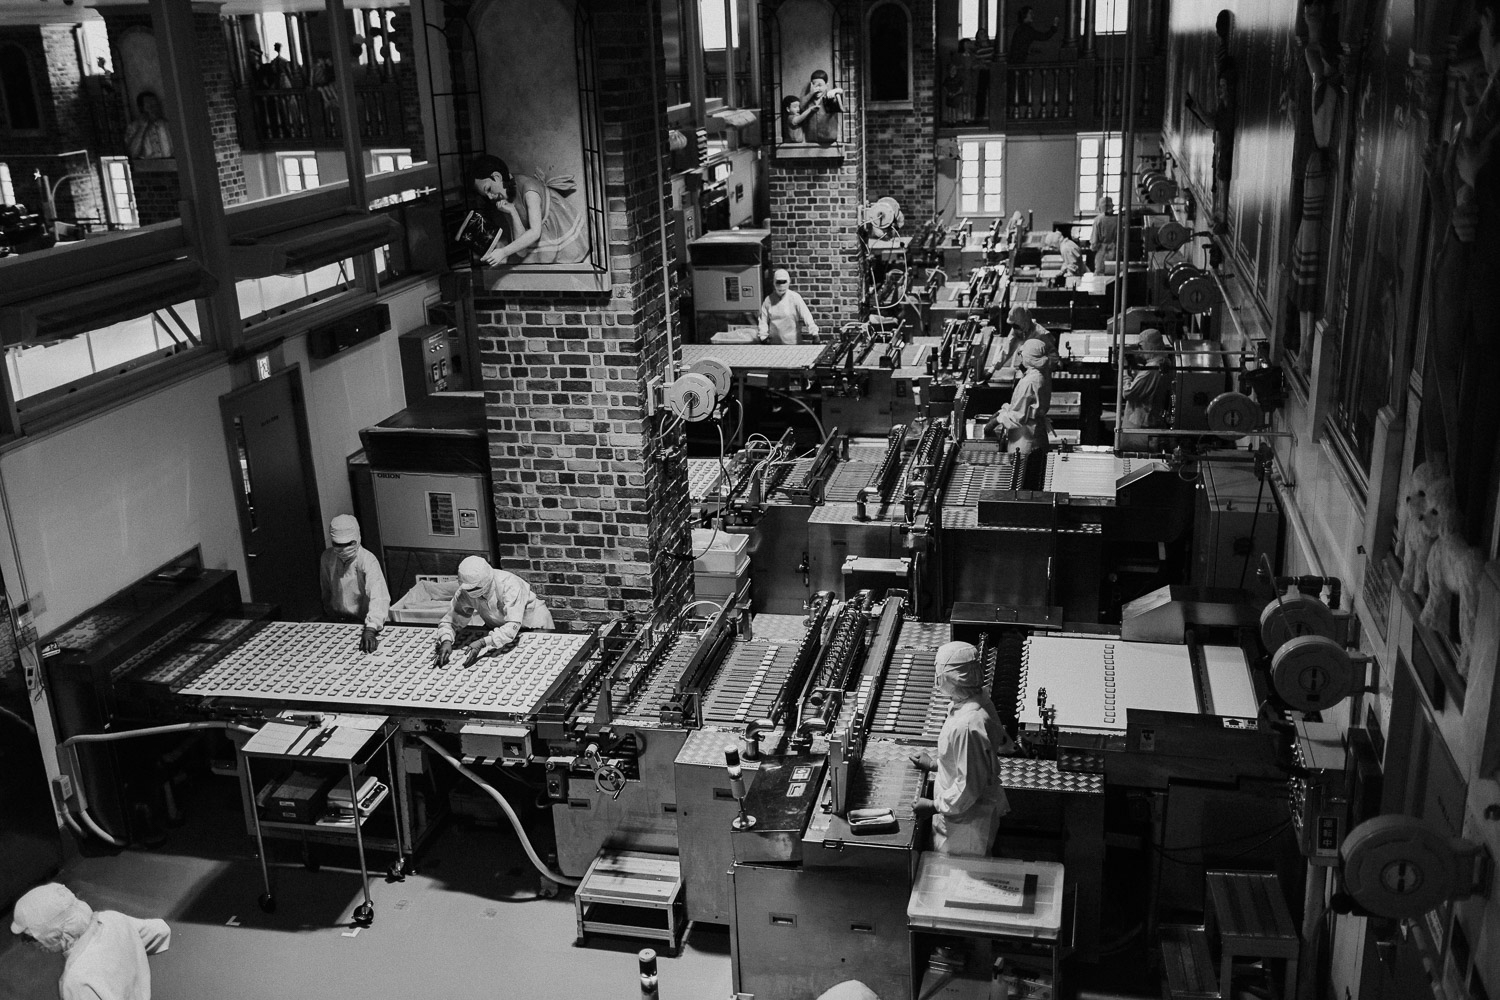 Black and White image of inside the production line